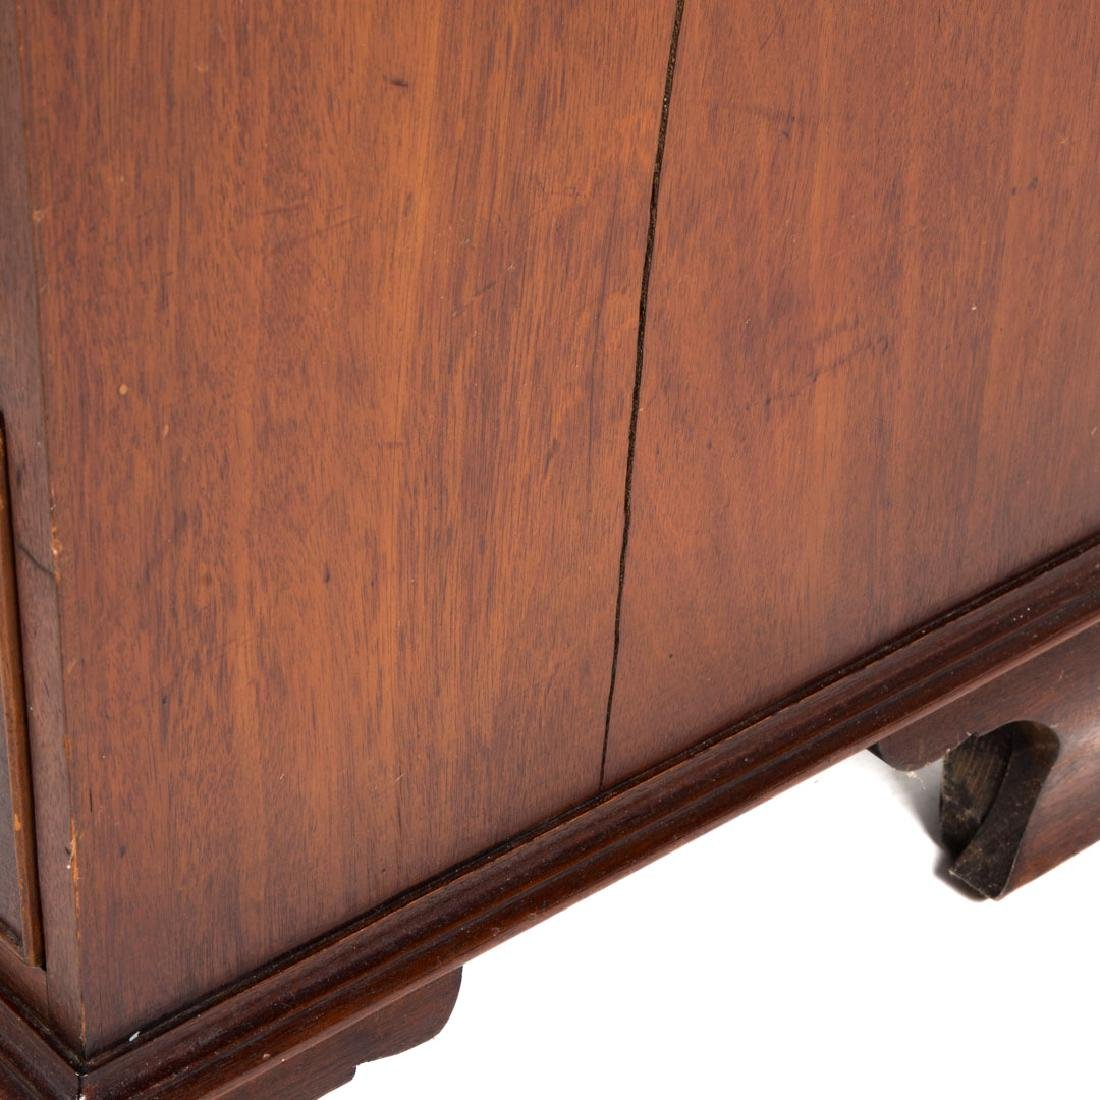 George III style mahogany bachelor's chest - 5